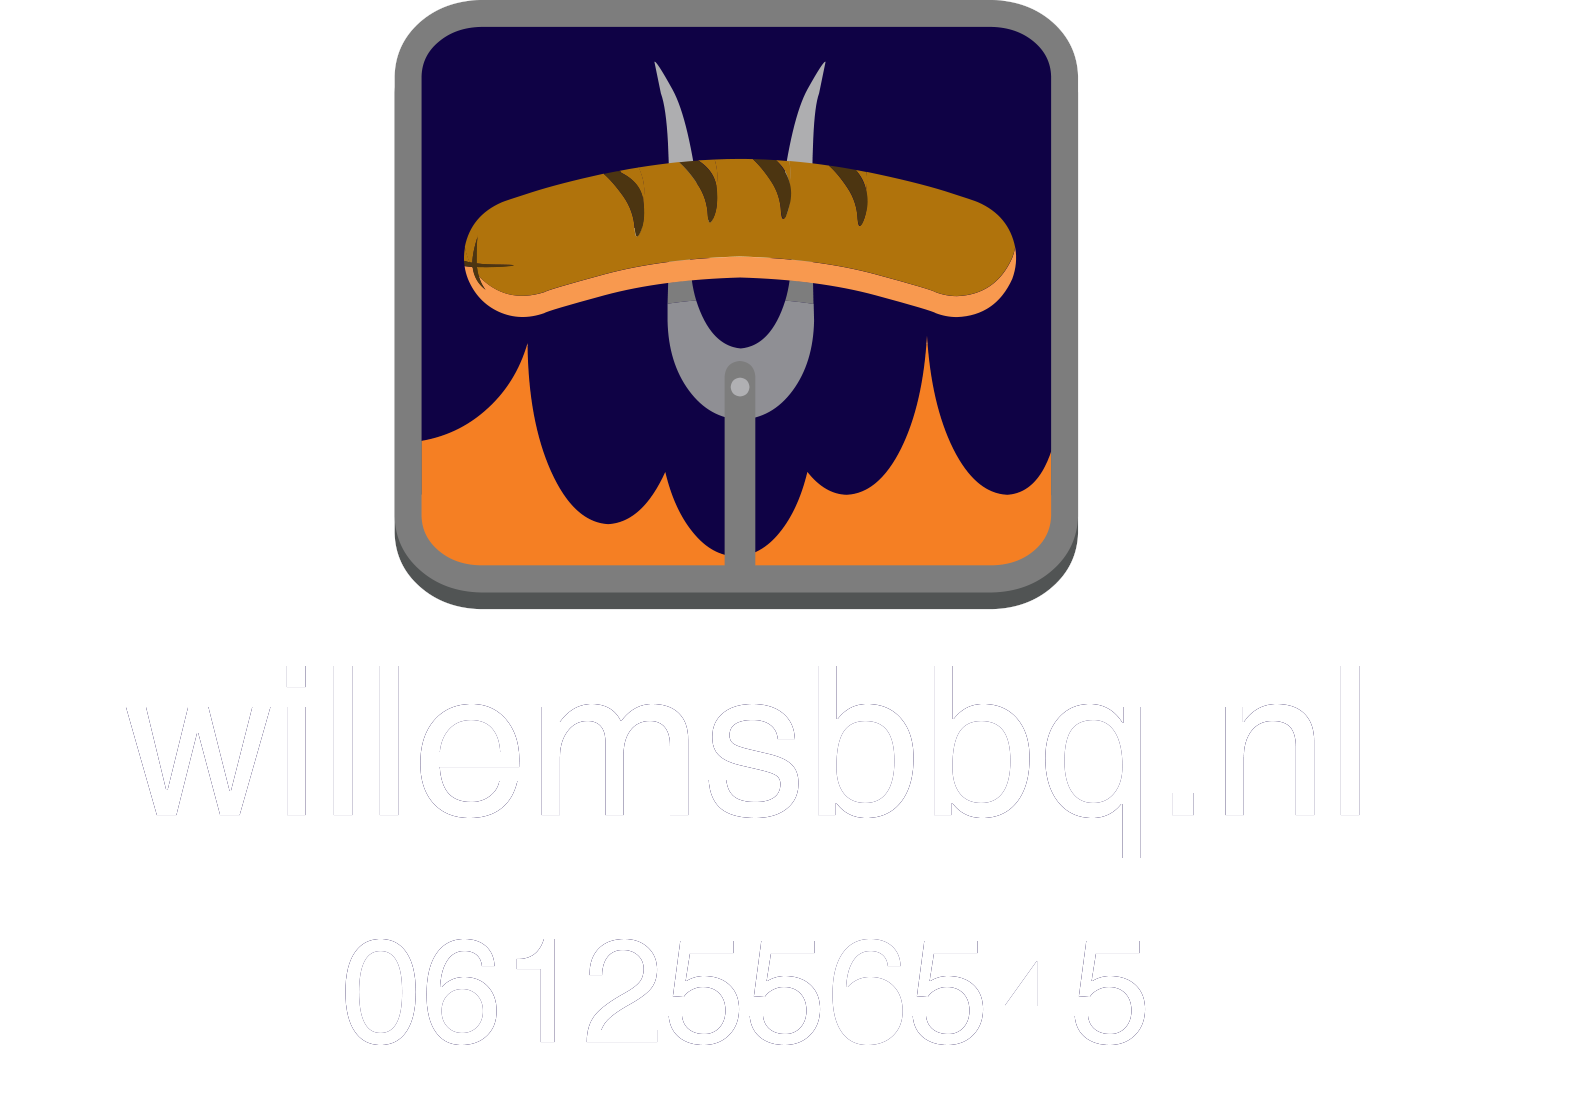 willemsbbq.nl